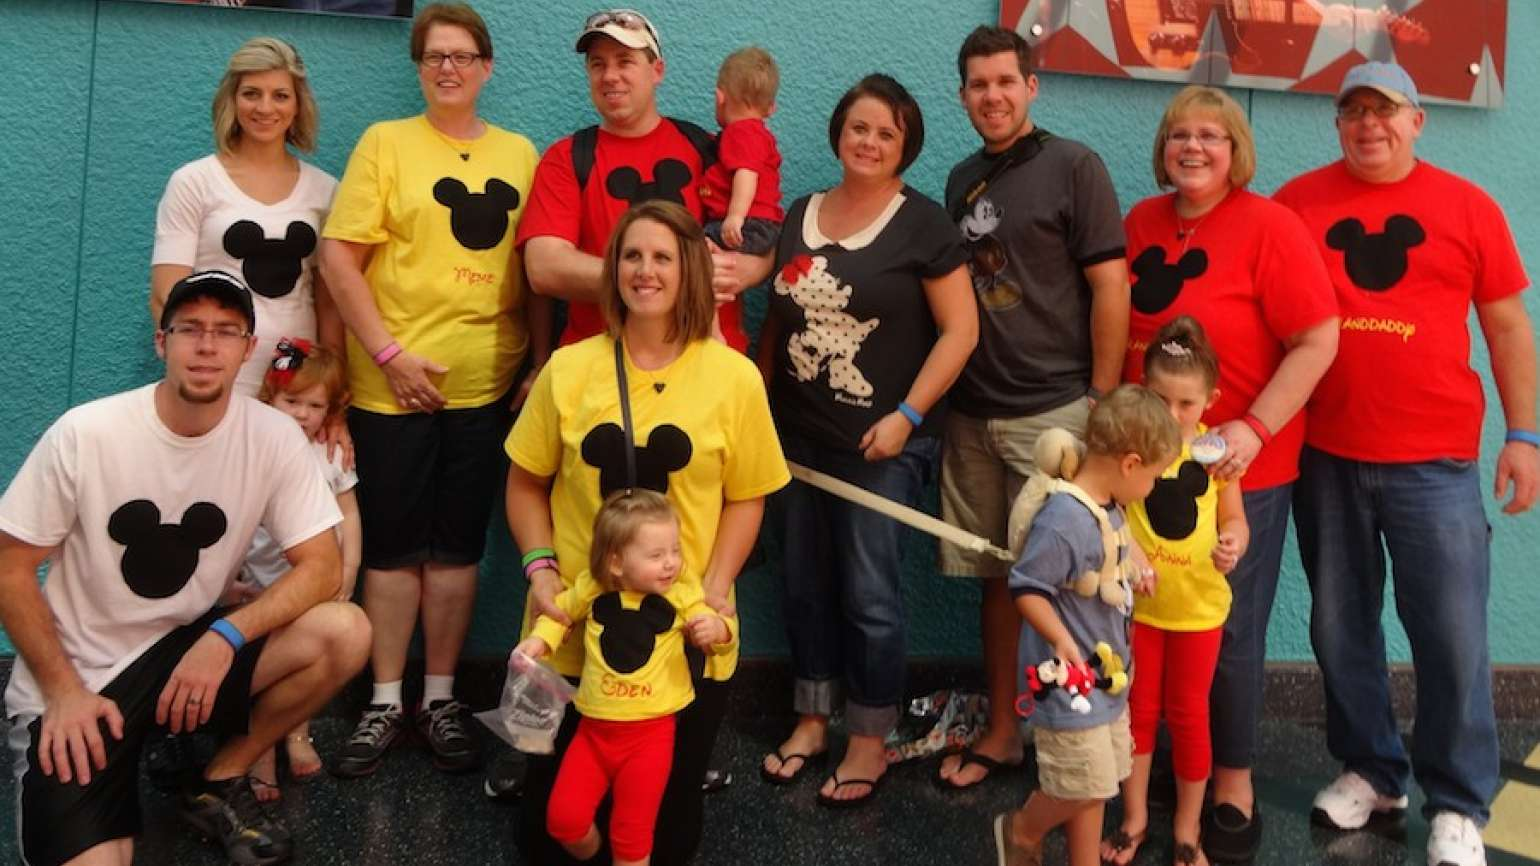 Michelle Cox (second from right) with her family at Disney World.